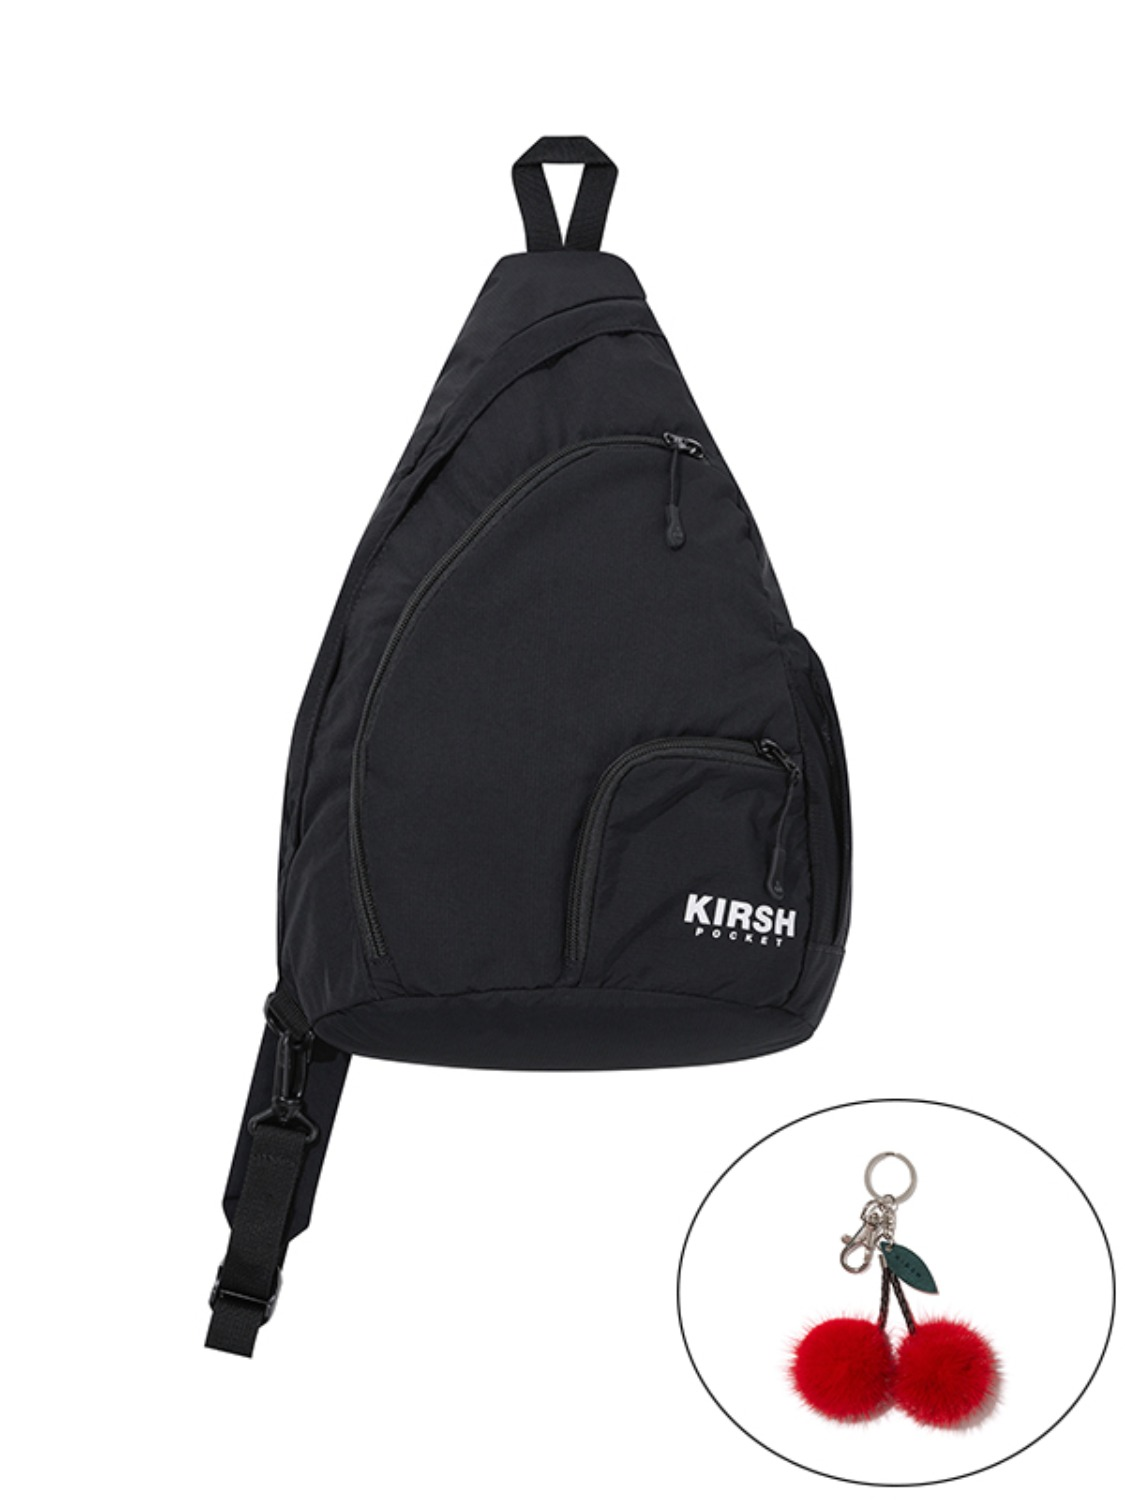 (10월 7일 예약 발송)KIRSH POCKET MULTI POCKET SLING BAG JA [BLACK]